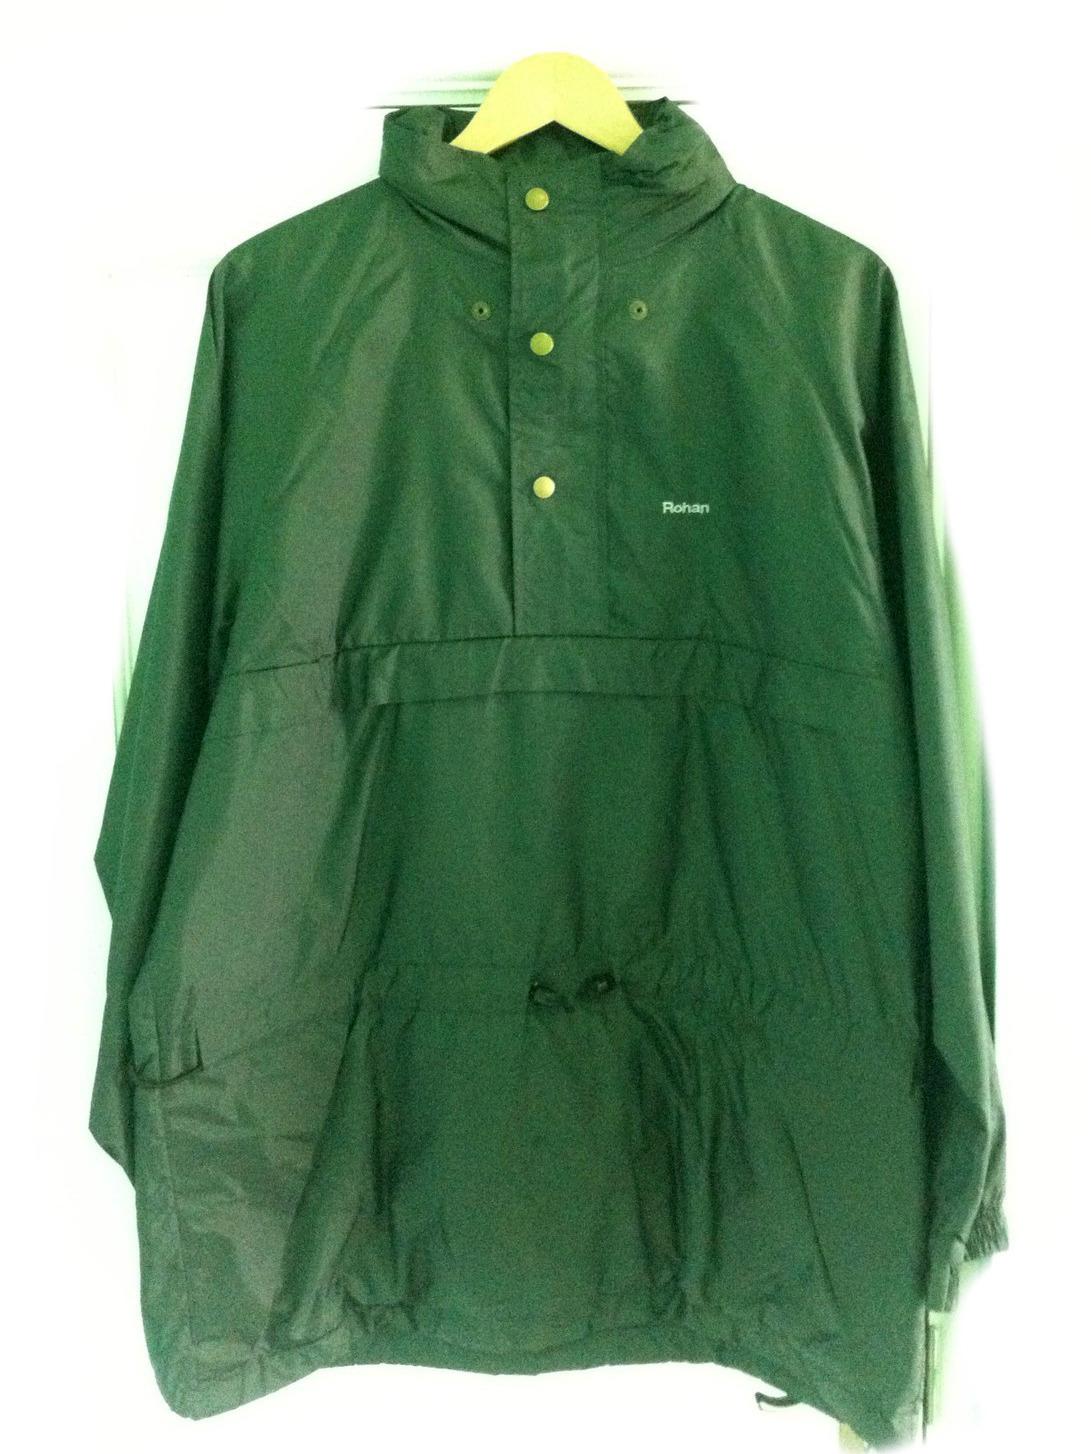 Rohan Rush Anorak check out www.thecagoule.com for info